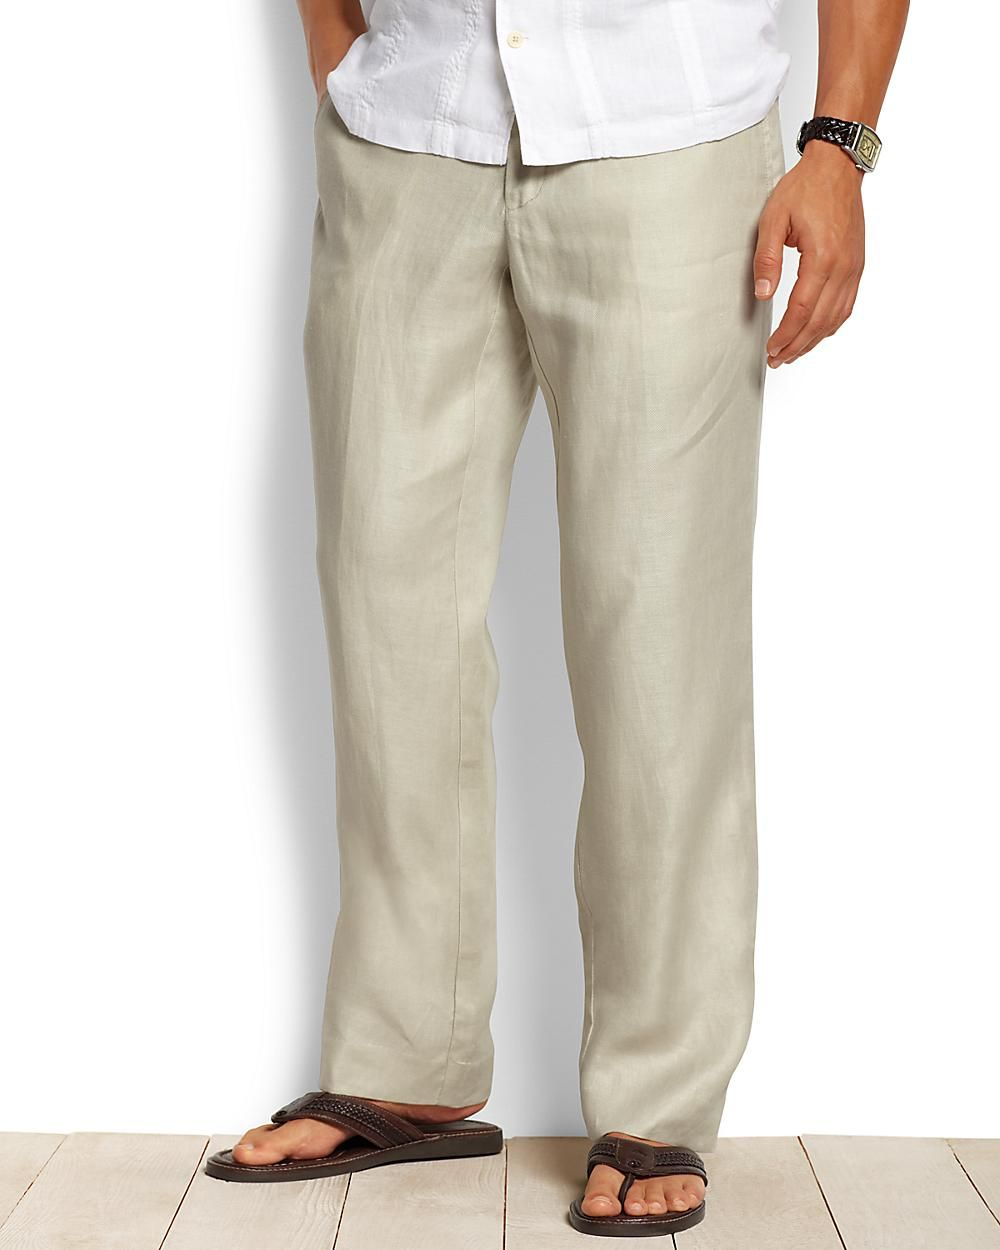 Men's casual linen trousers Do off-duty in style with our fabulous range of men's casual trousers. Choose from natural linen designs, chinos, classic cargo s and dashing cords, laid-back options or the perfect pair for 'smart-casual' - our wide collection of colours and cuts will fashionably fit the bill.